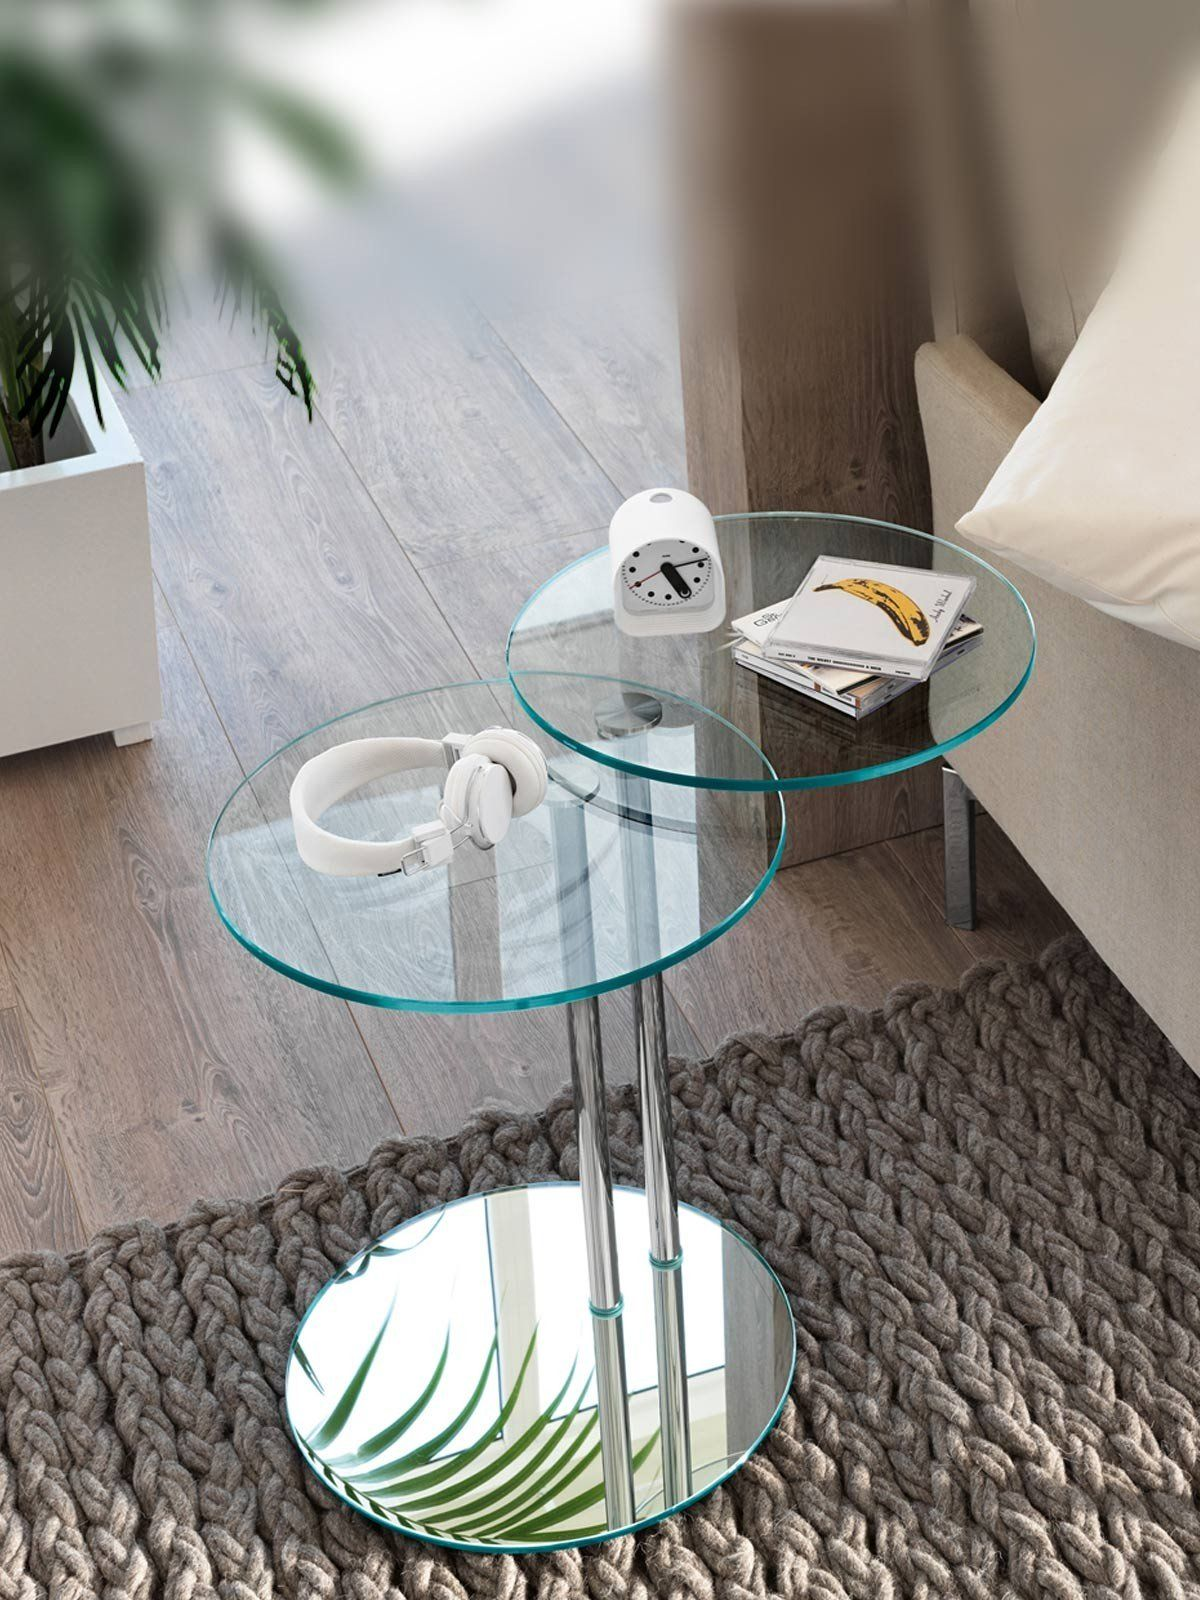 This Glass Table Is A Great Bedside Or Sofa Side Table This Glass Table Is Made Up From Two Circular Glass Tabl Coffee Table Glass Side Tables Glass Furniture [ 1600 x 1200 Pixel ]